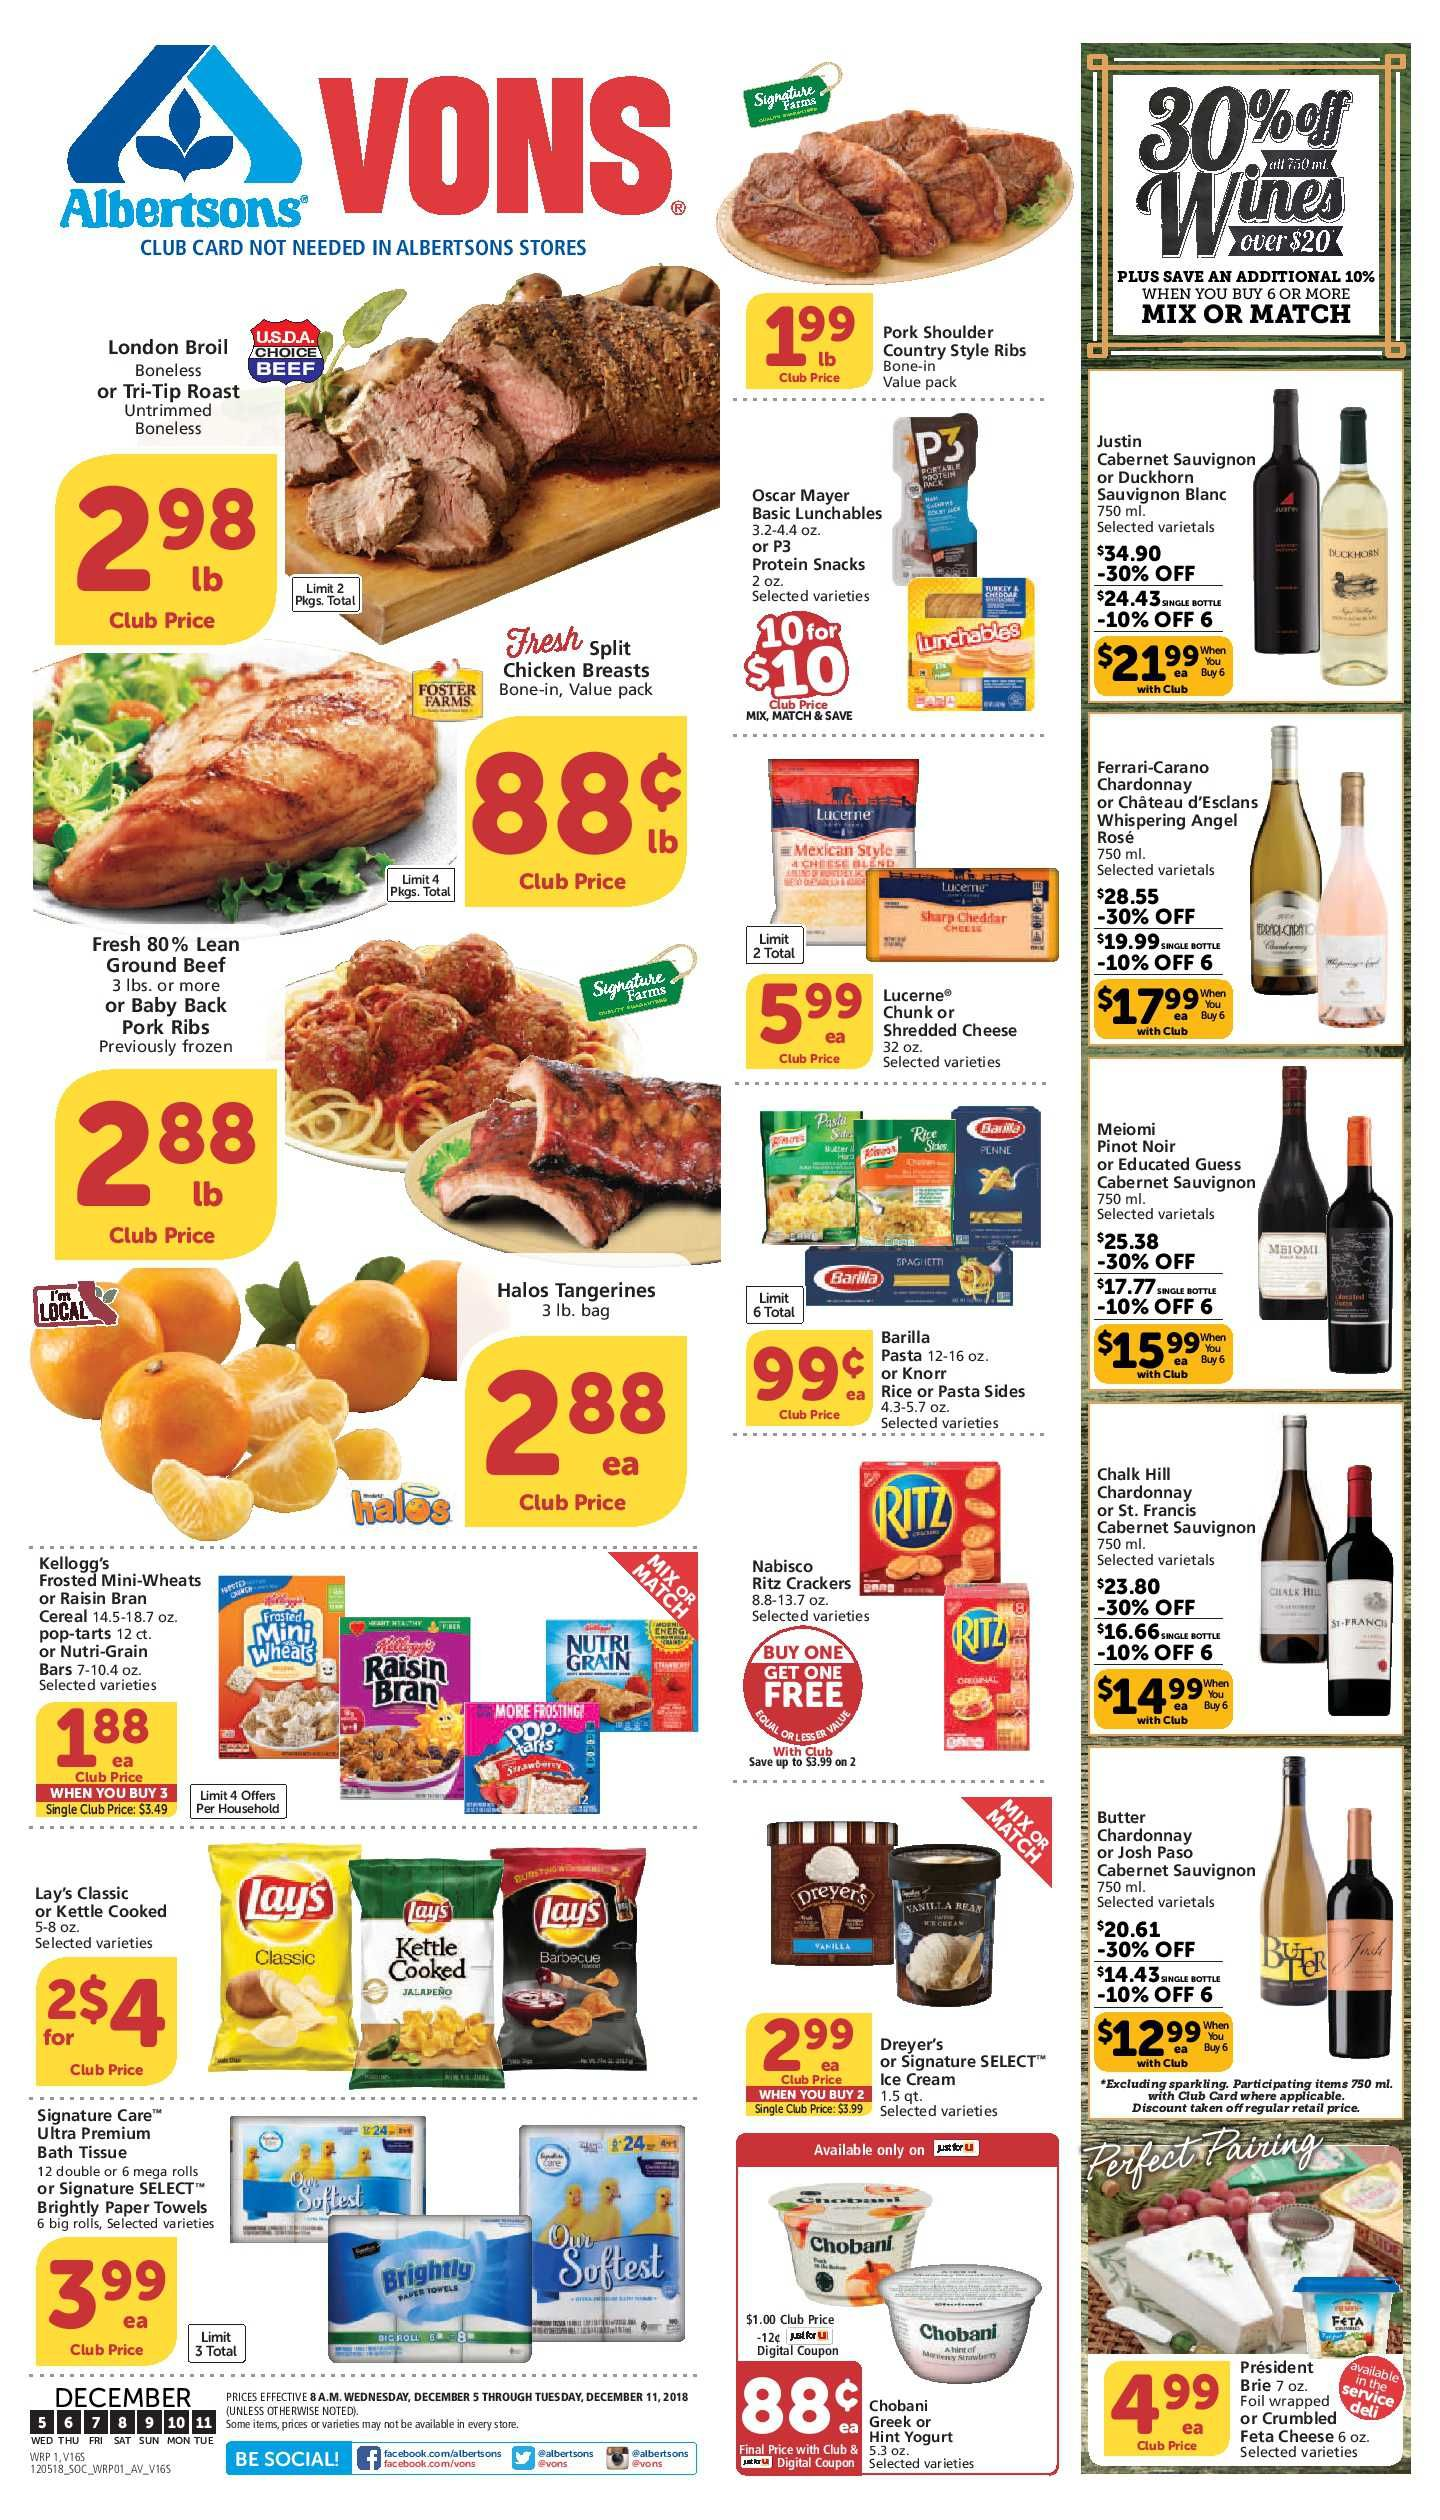 Vons Weekly Ad Flyer 02/26/20 03/03/20 Grocery store